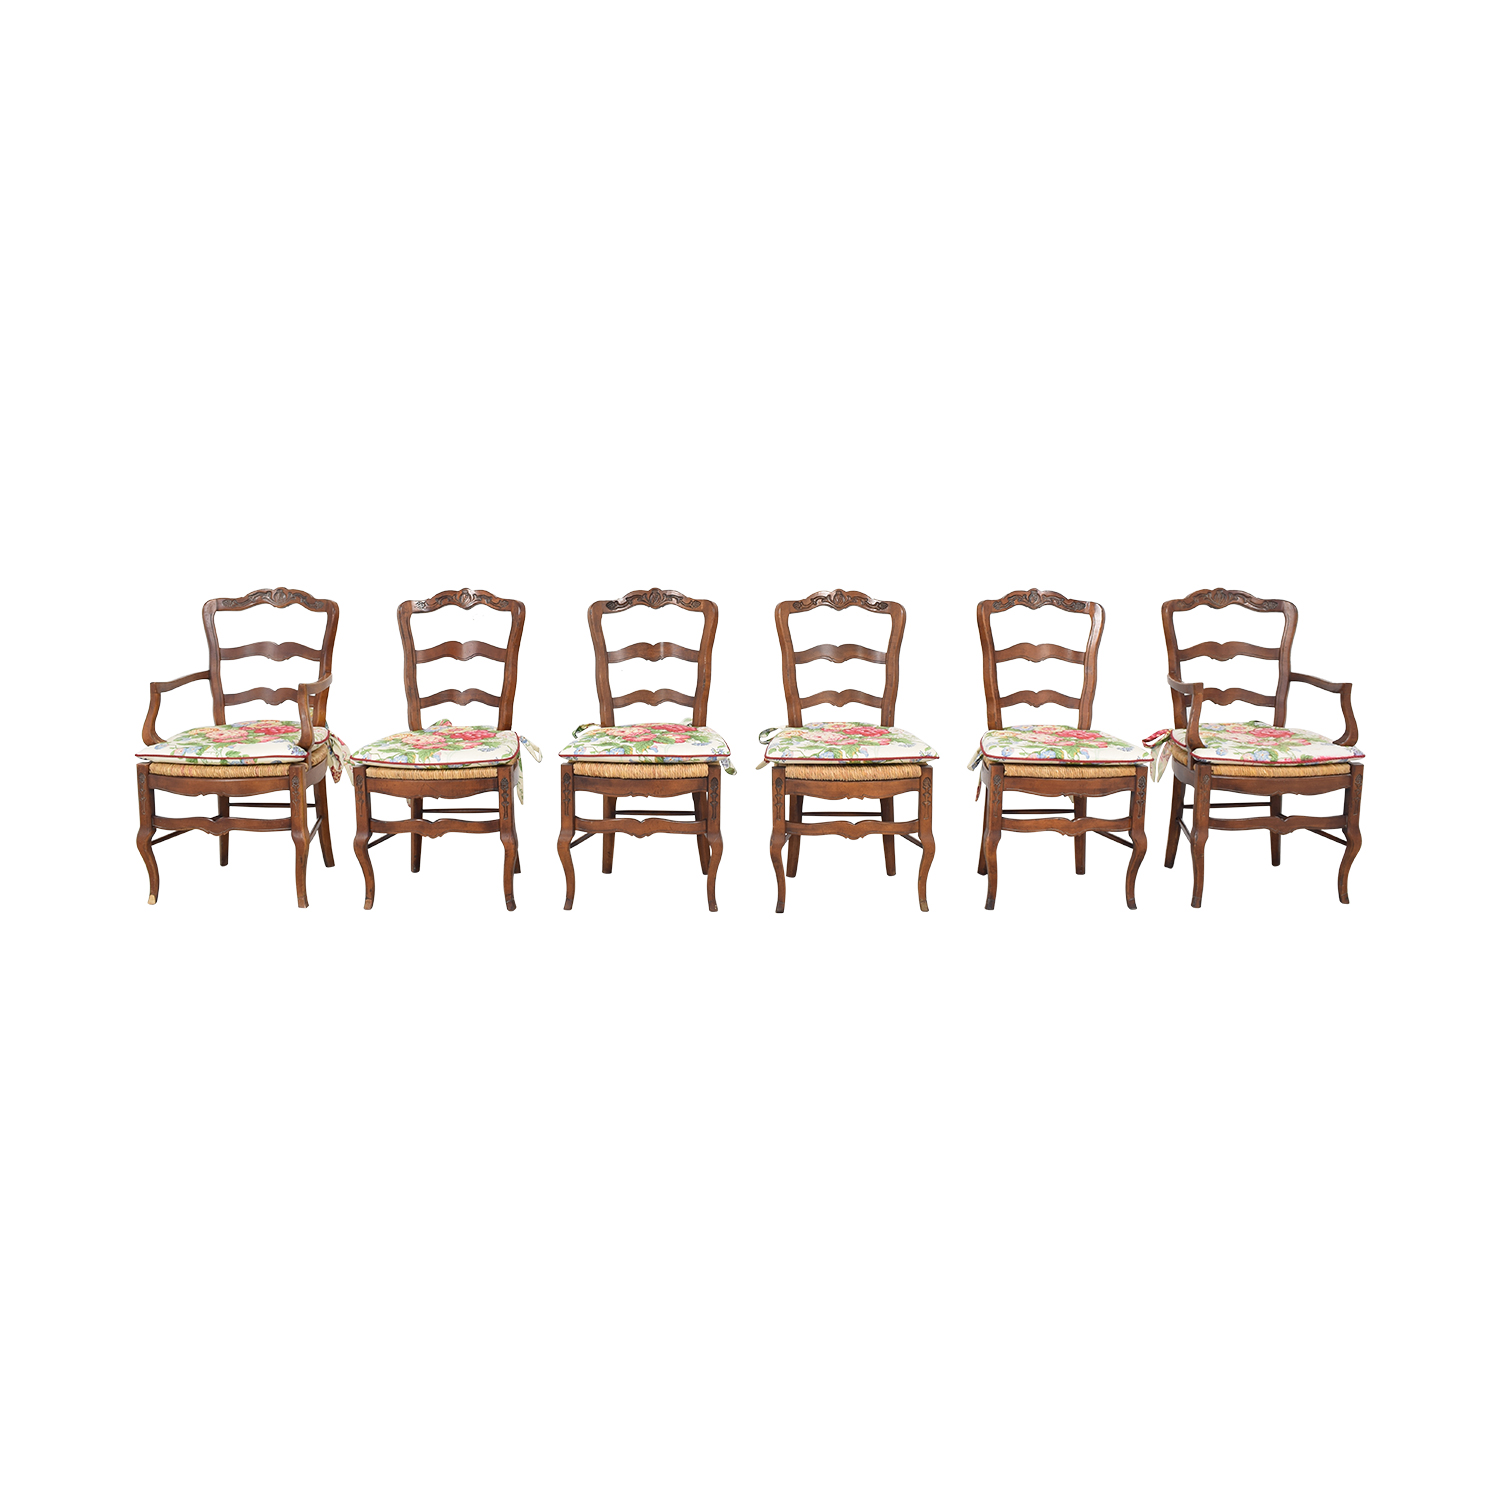 Farmhouse Dining Chairs with Cushions multicolored